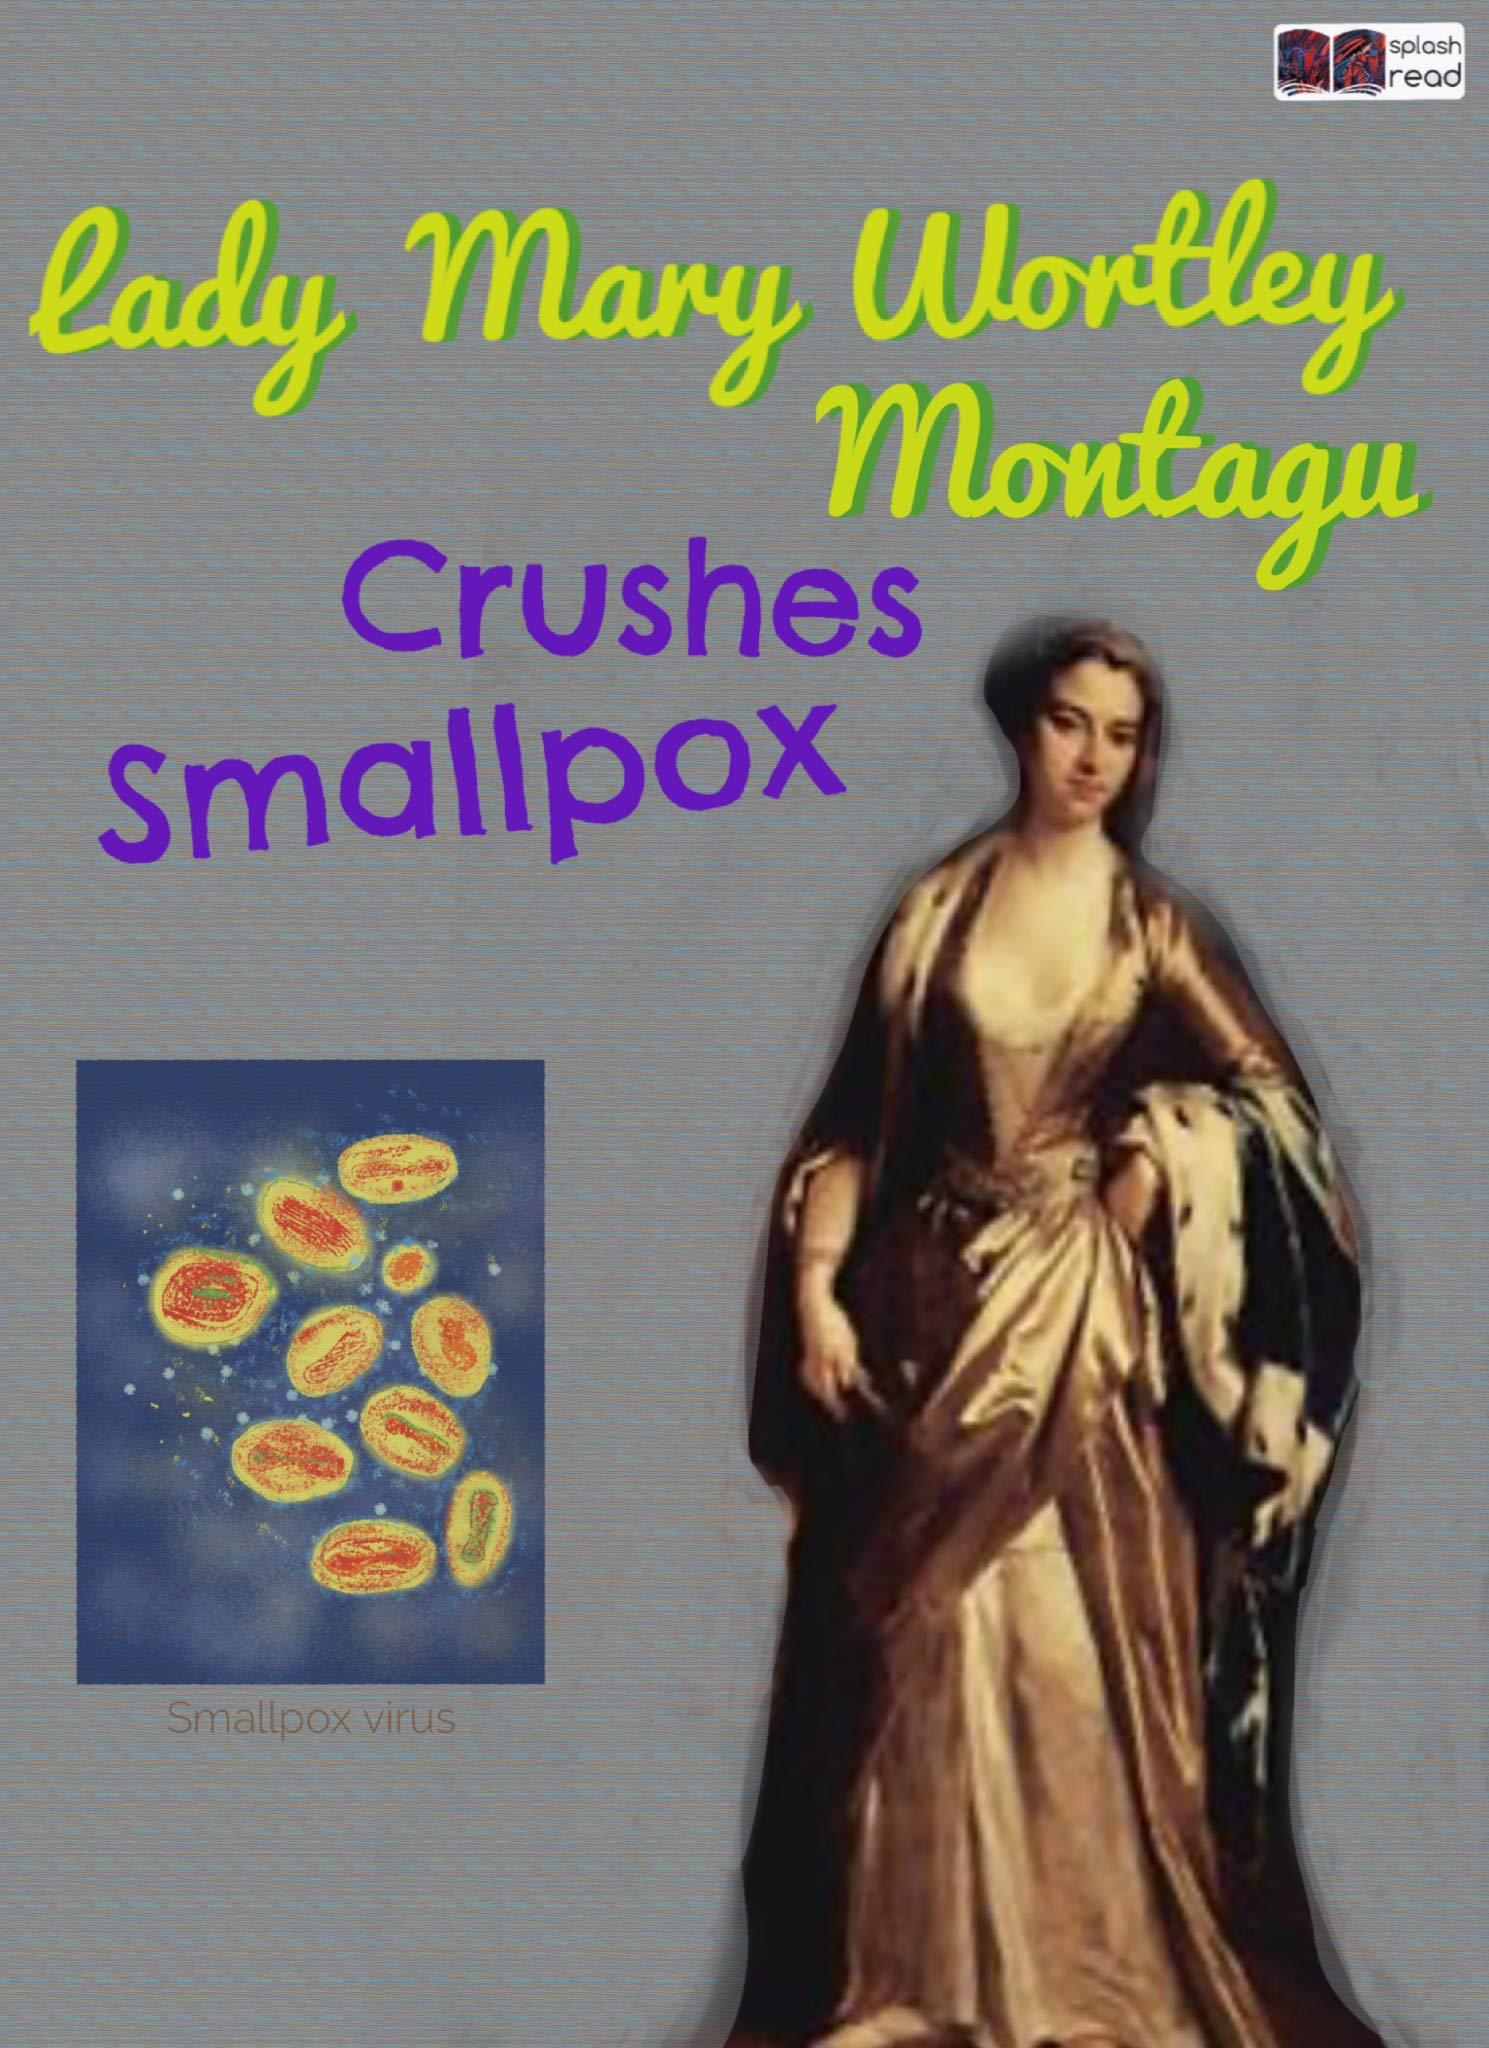 Lady Mary Wortley Montagu Crushes Smallpox: A Historical Fiction Short Story for Kids